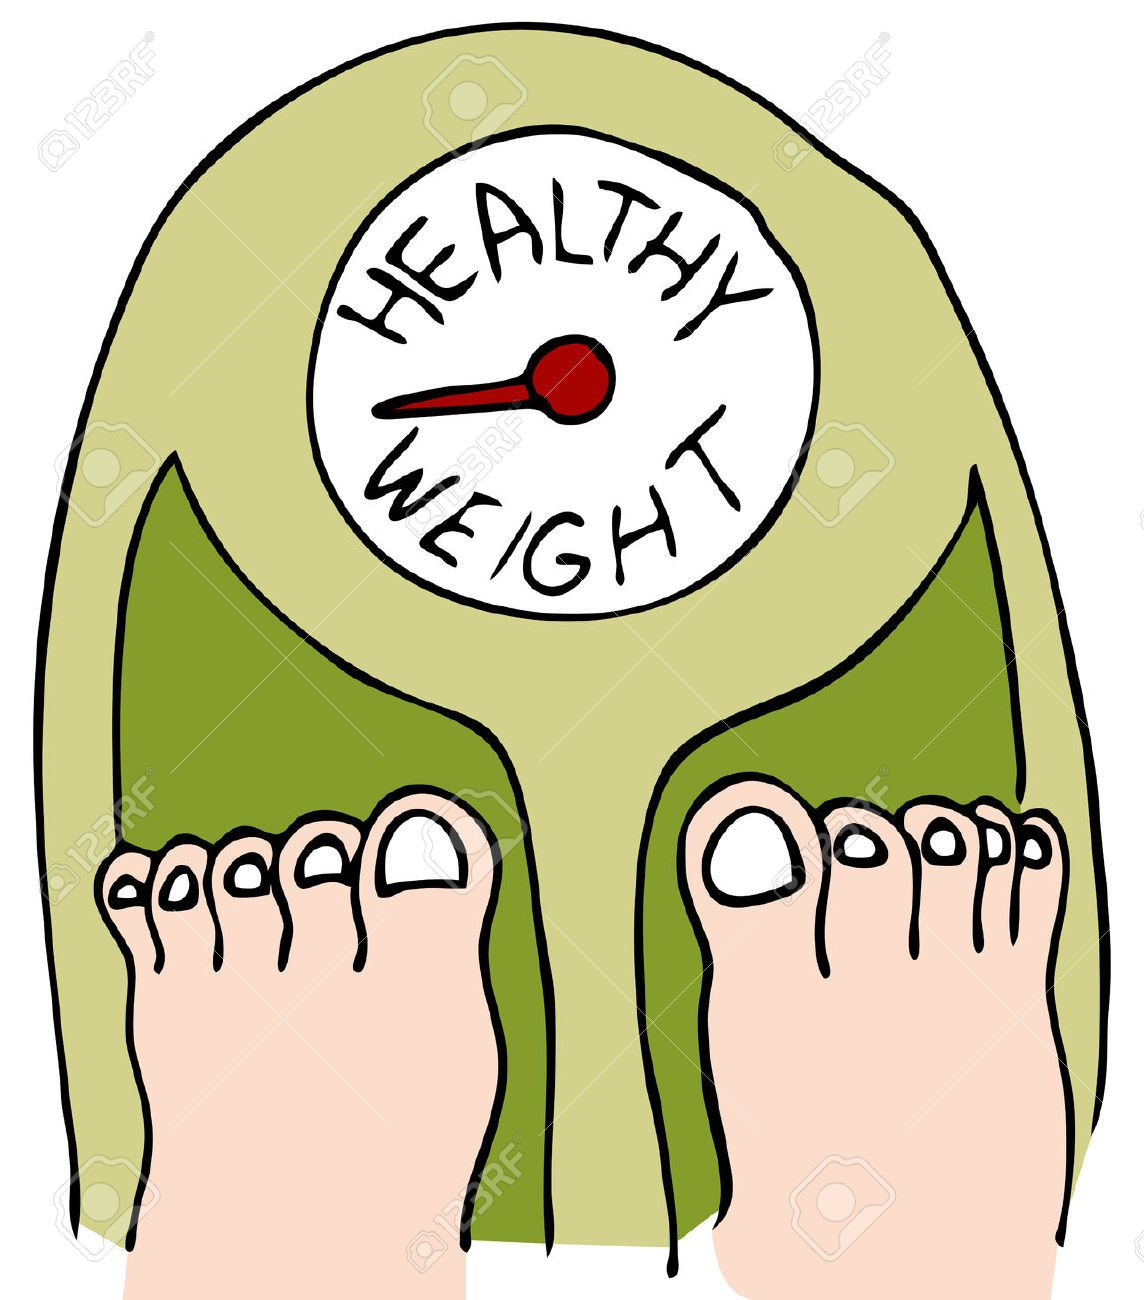 Image result for weight loss cartoon scales